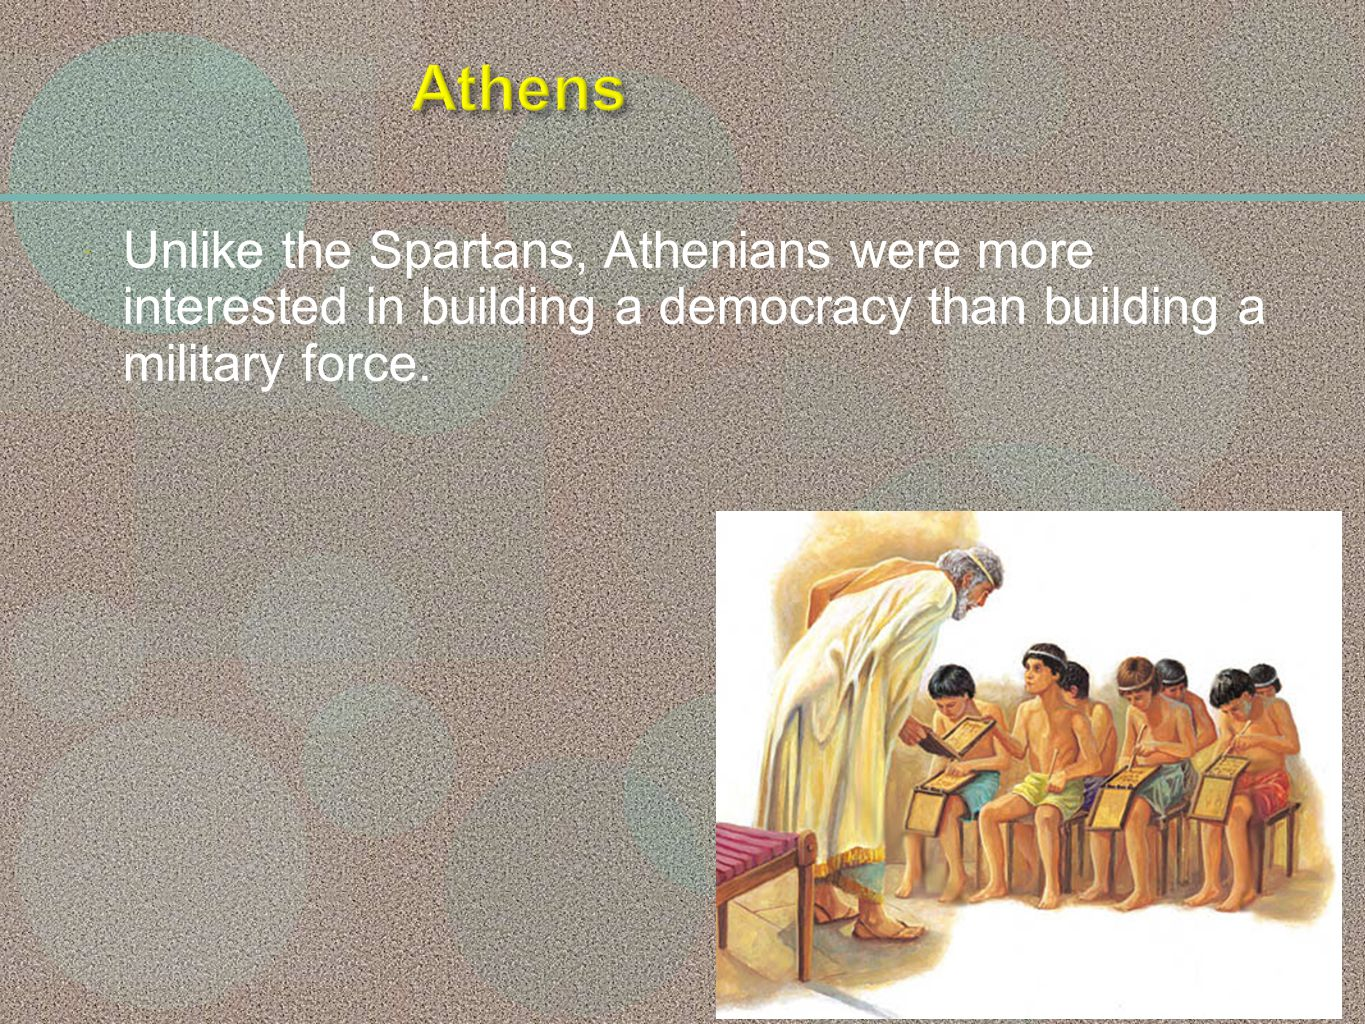 athens and spartans Athens and sparta is an essential handbook to the study of fifth century greek history and society it encourages the reader to engage critically with the evidence, presenting a wide selection of ancient source material along with clear analysis and narrativethis fully revised and updated second edition contains a new appendix on the.